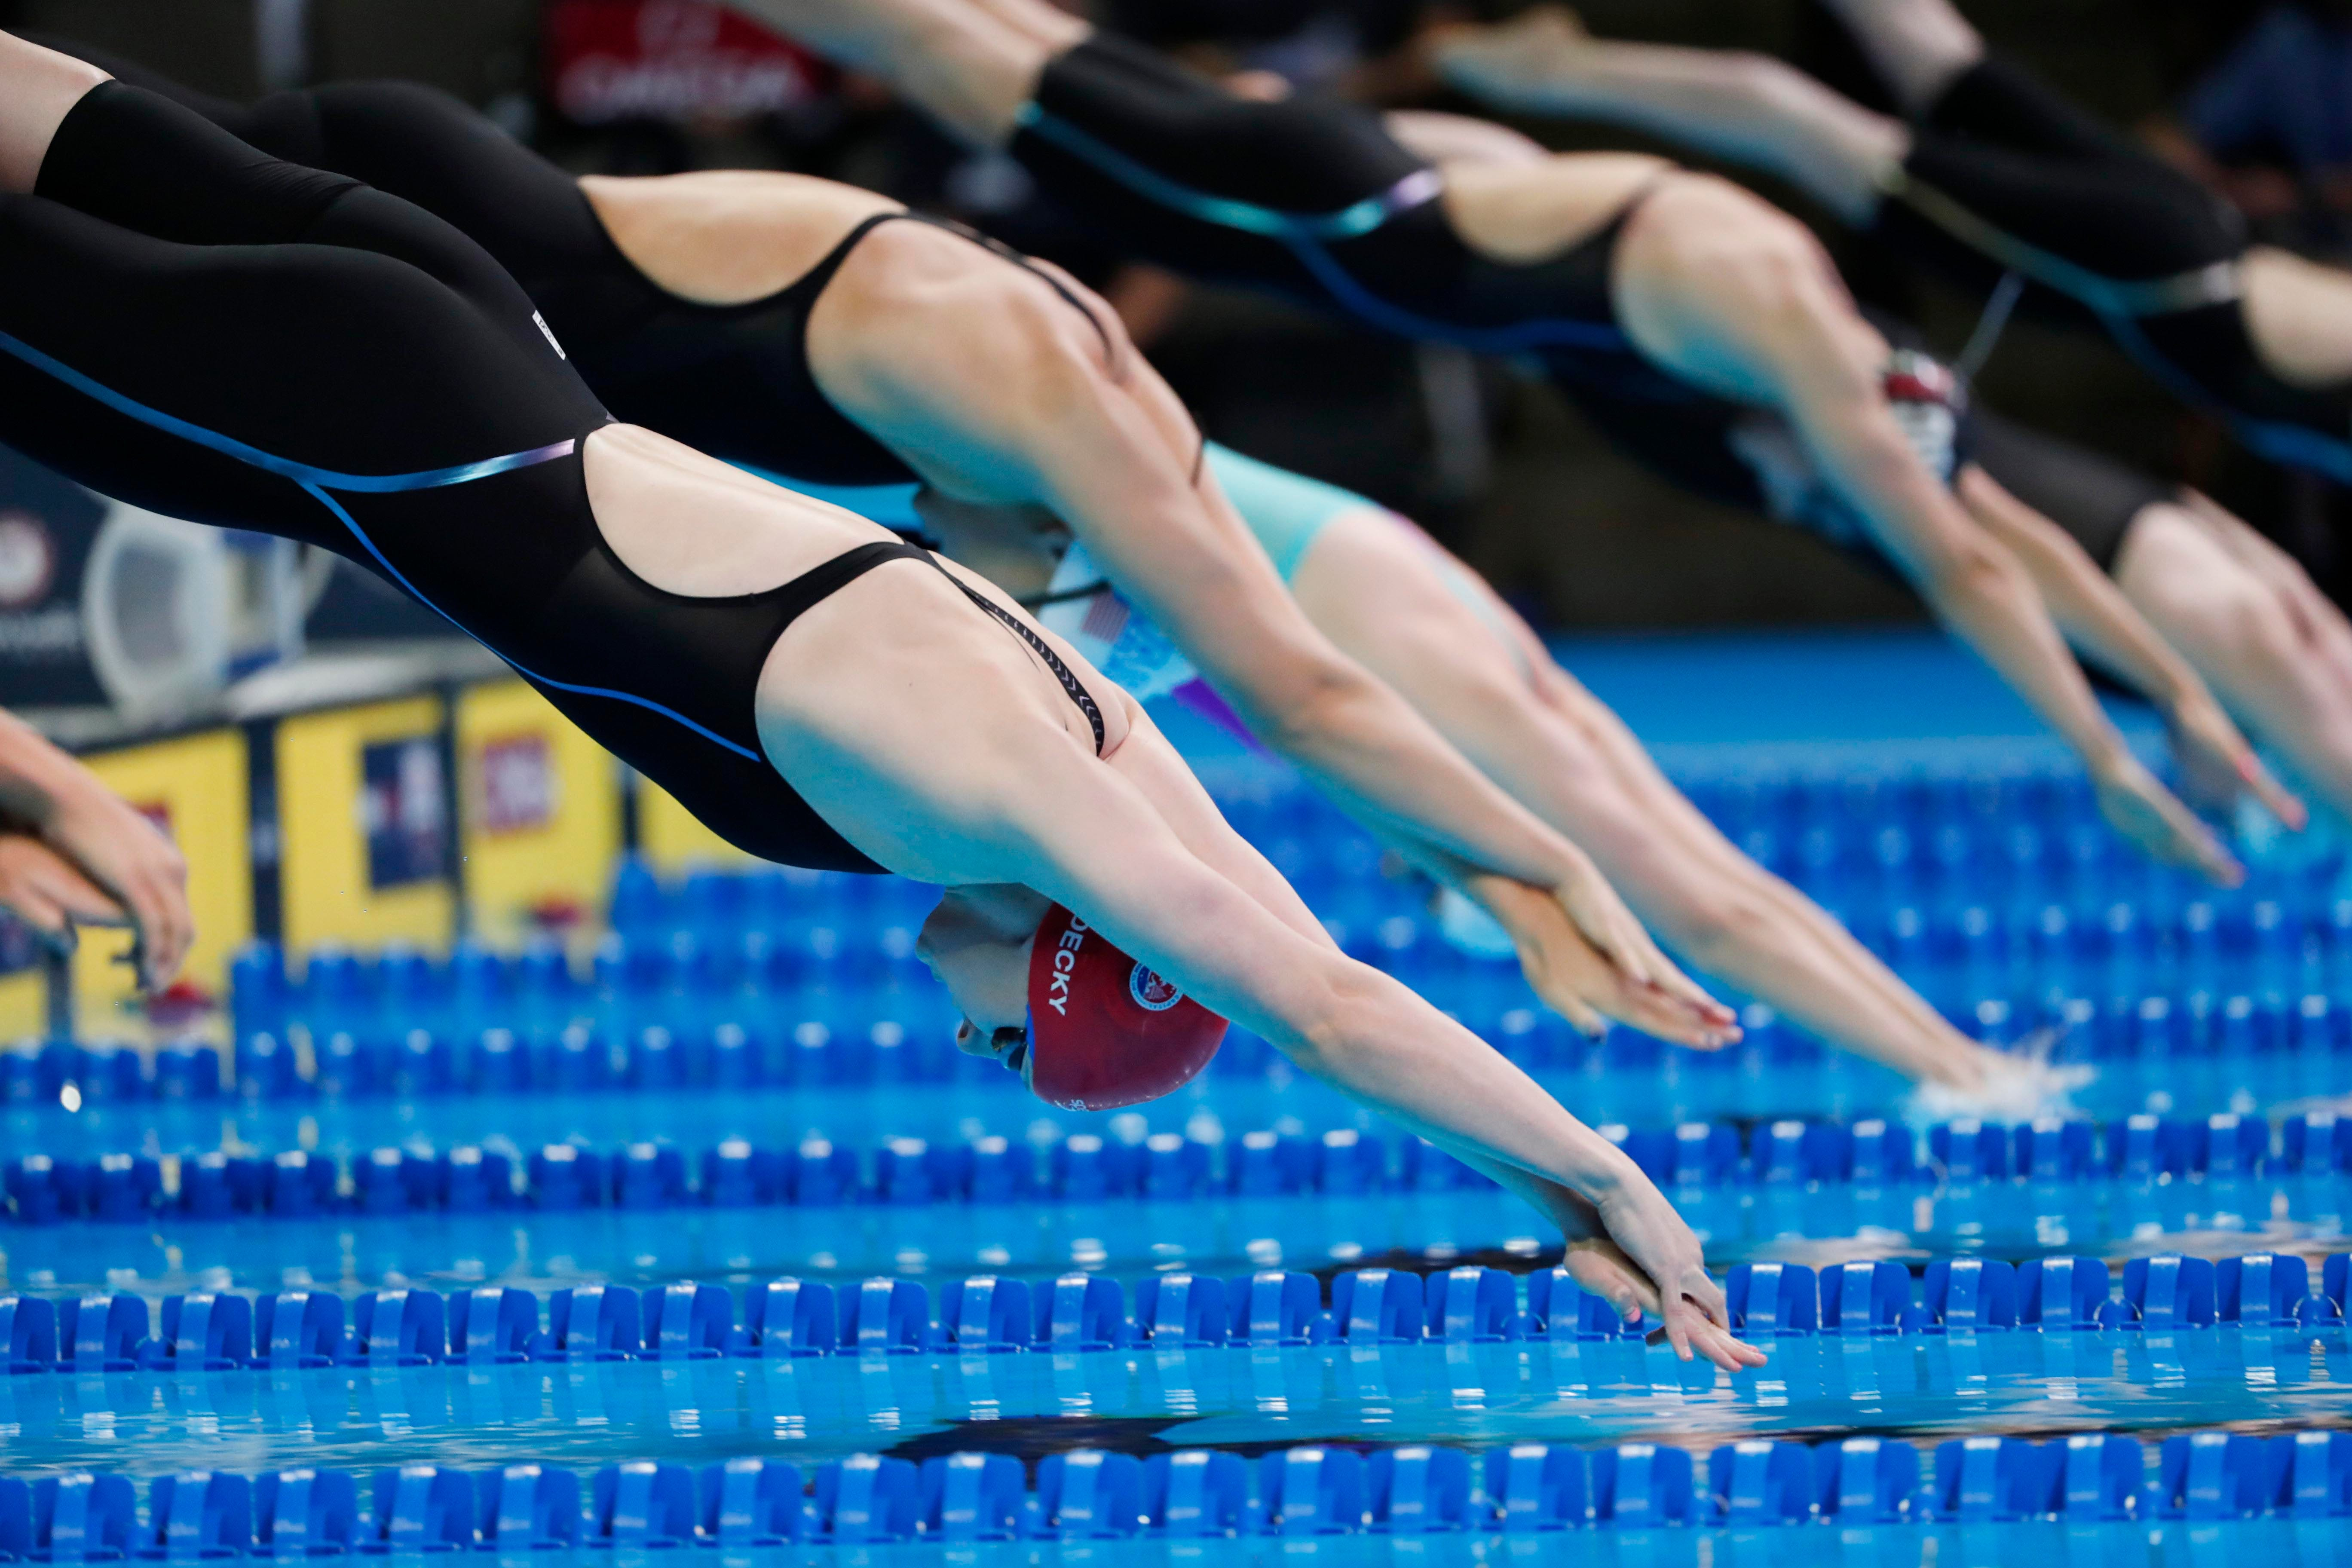 U.S. Olympic swimming trials: Event schedule, how to watch/stream the nation's top swimmers